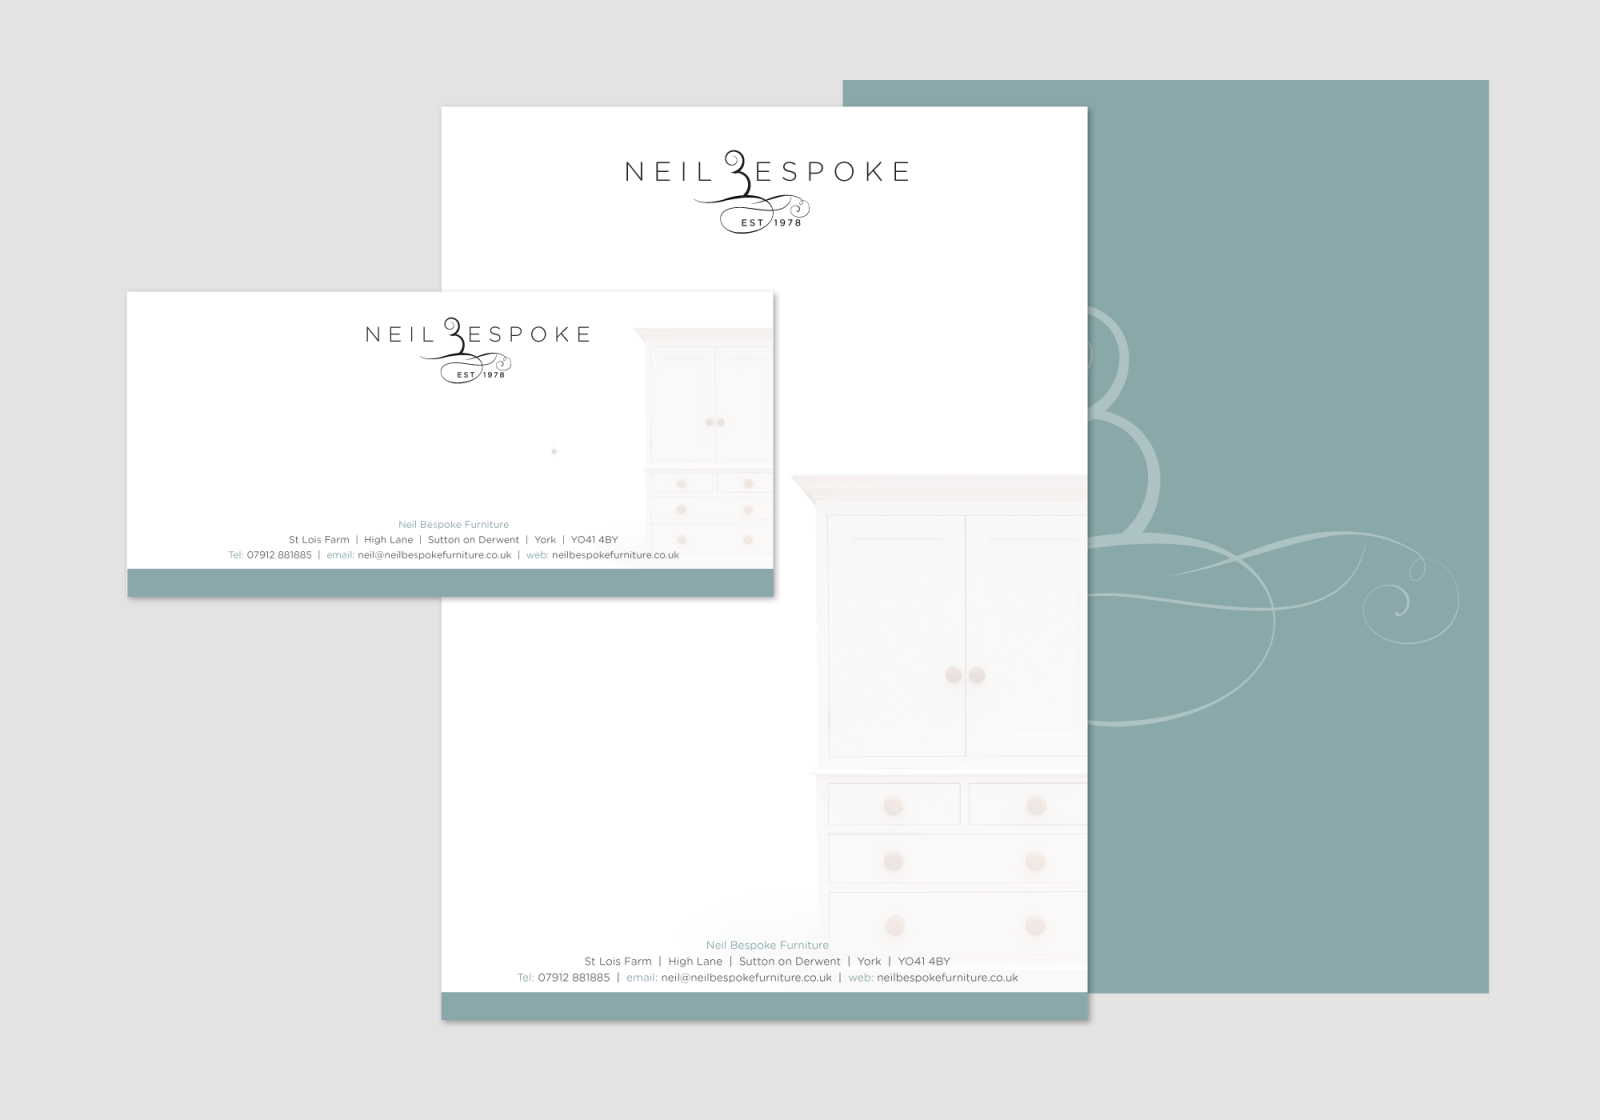 Neil Bespoke Stationery showing compliment slip and letterhead